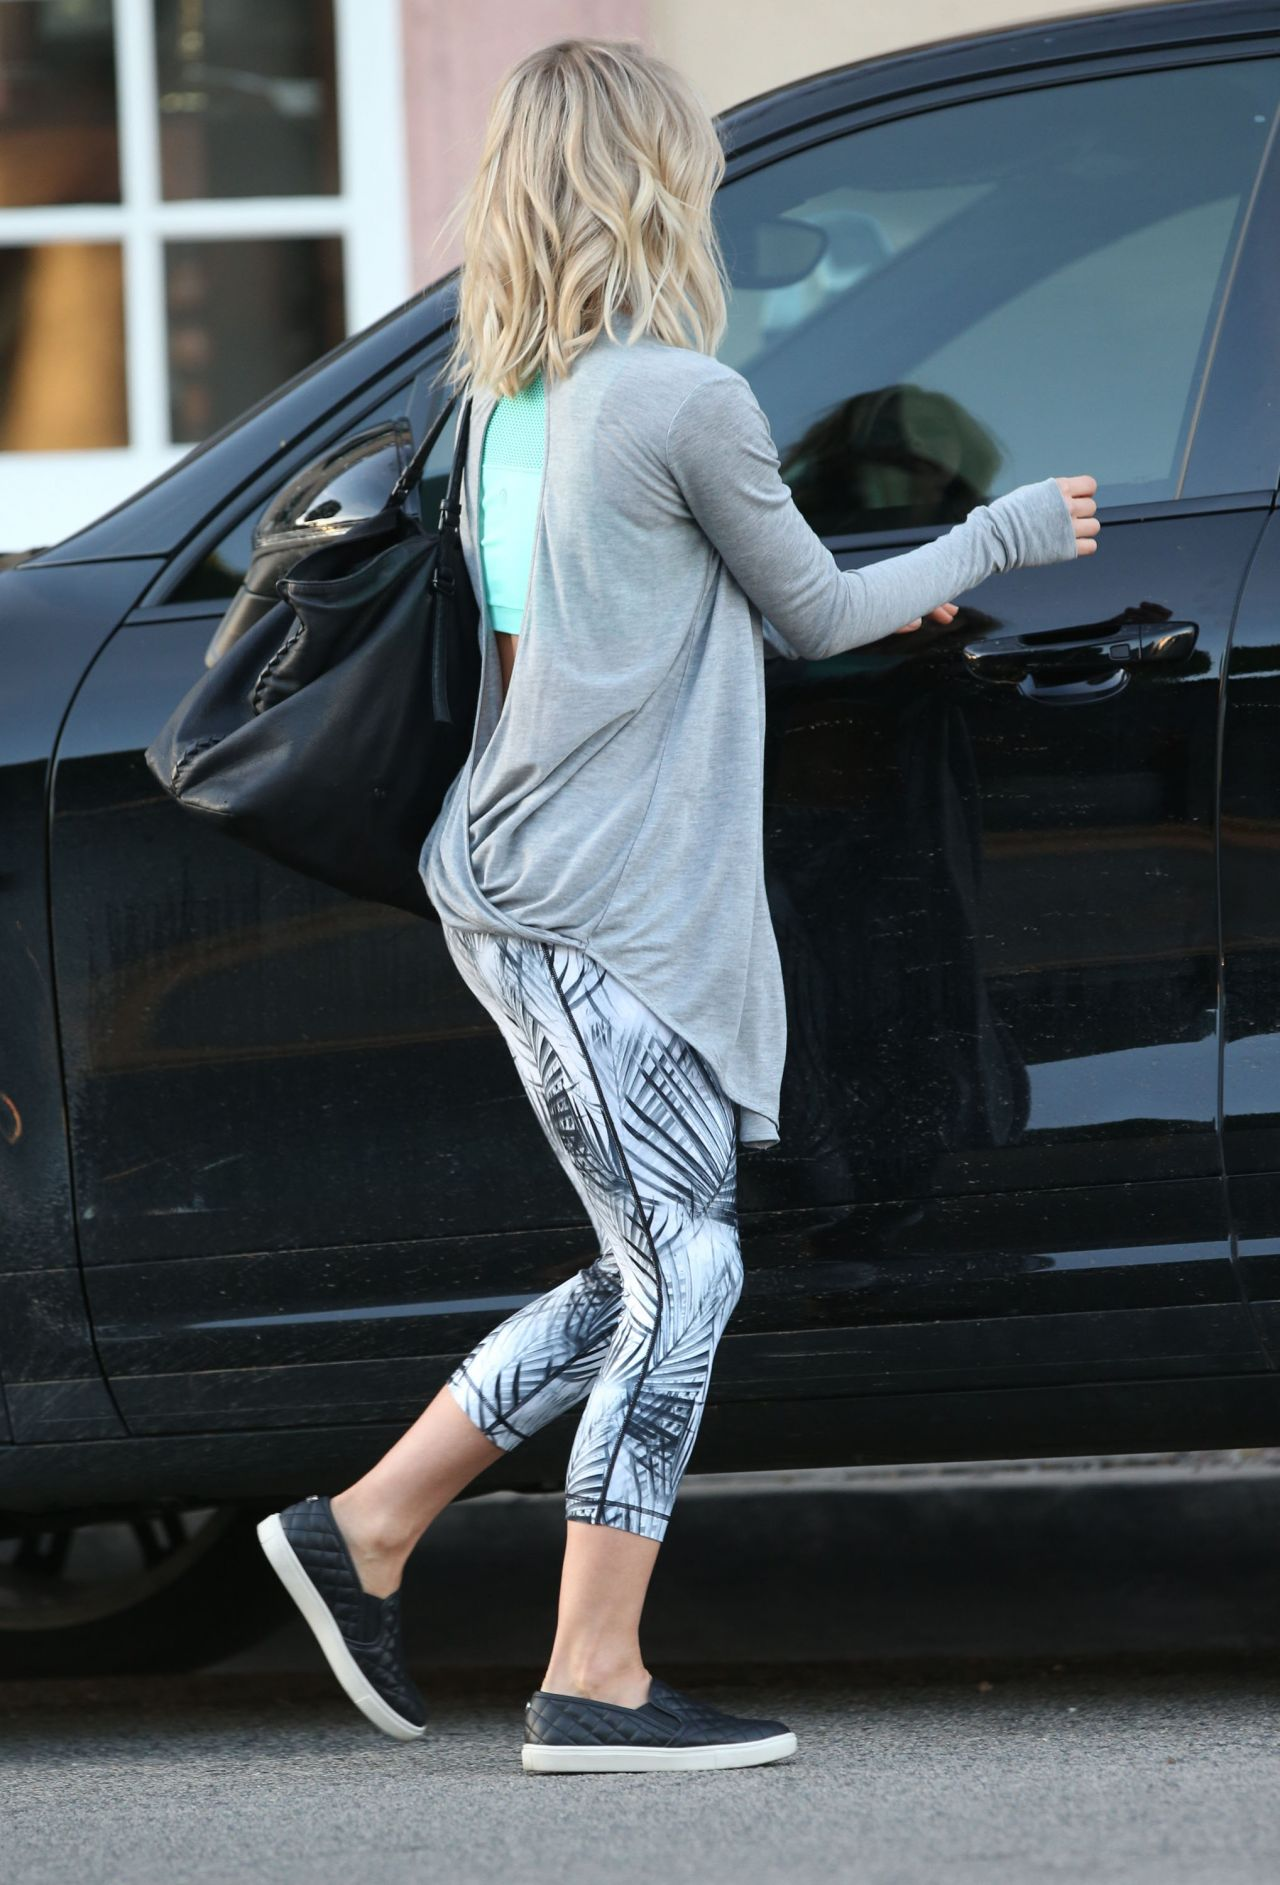 Julianne Hough Doing A Photoshoot In West Hollywood